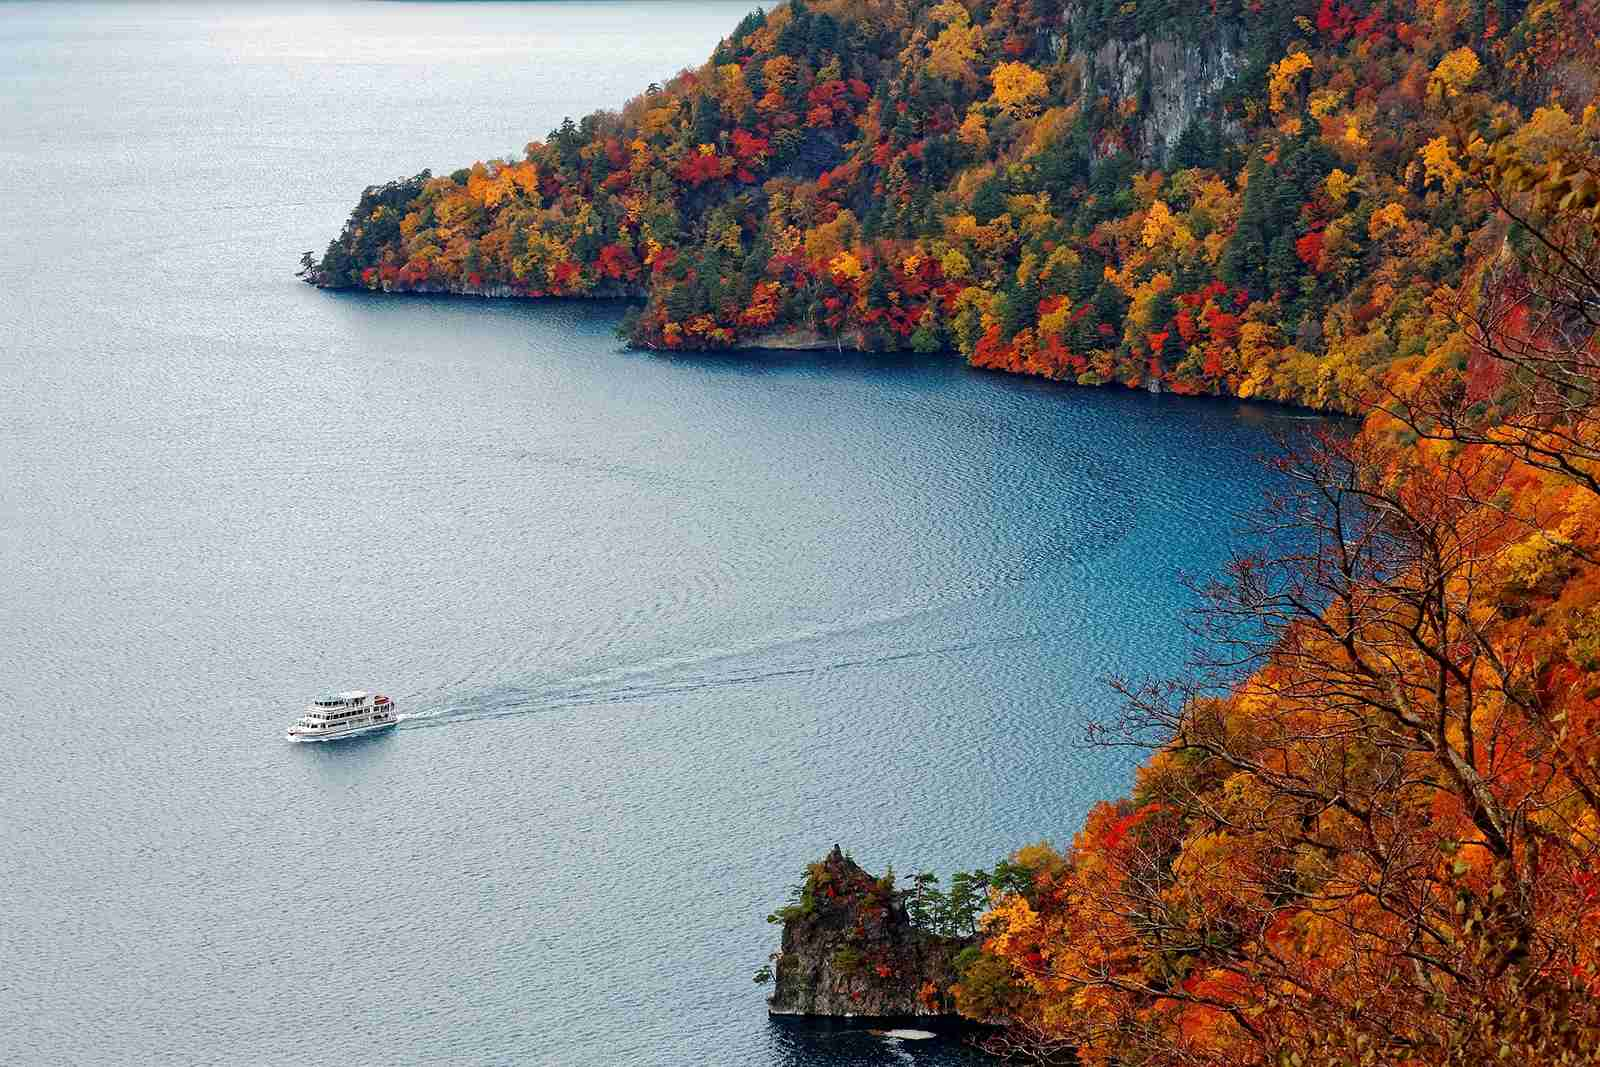 A cruise enjoying the beautiful fall foliage. (Photo by Shutterstock)